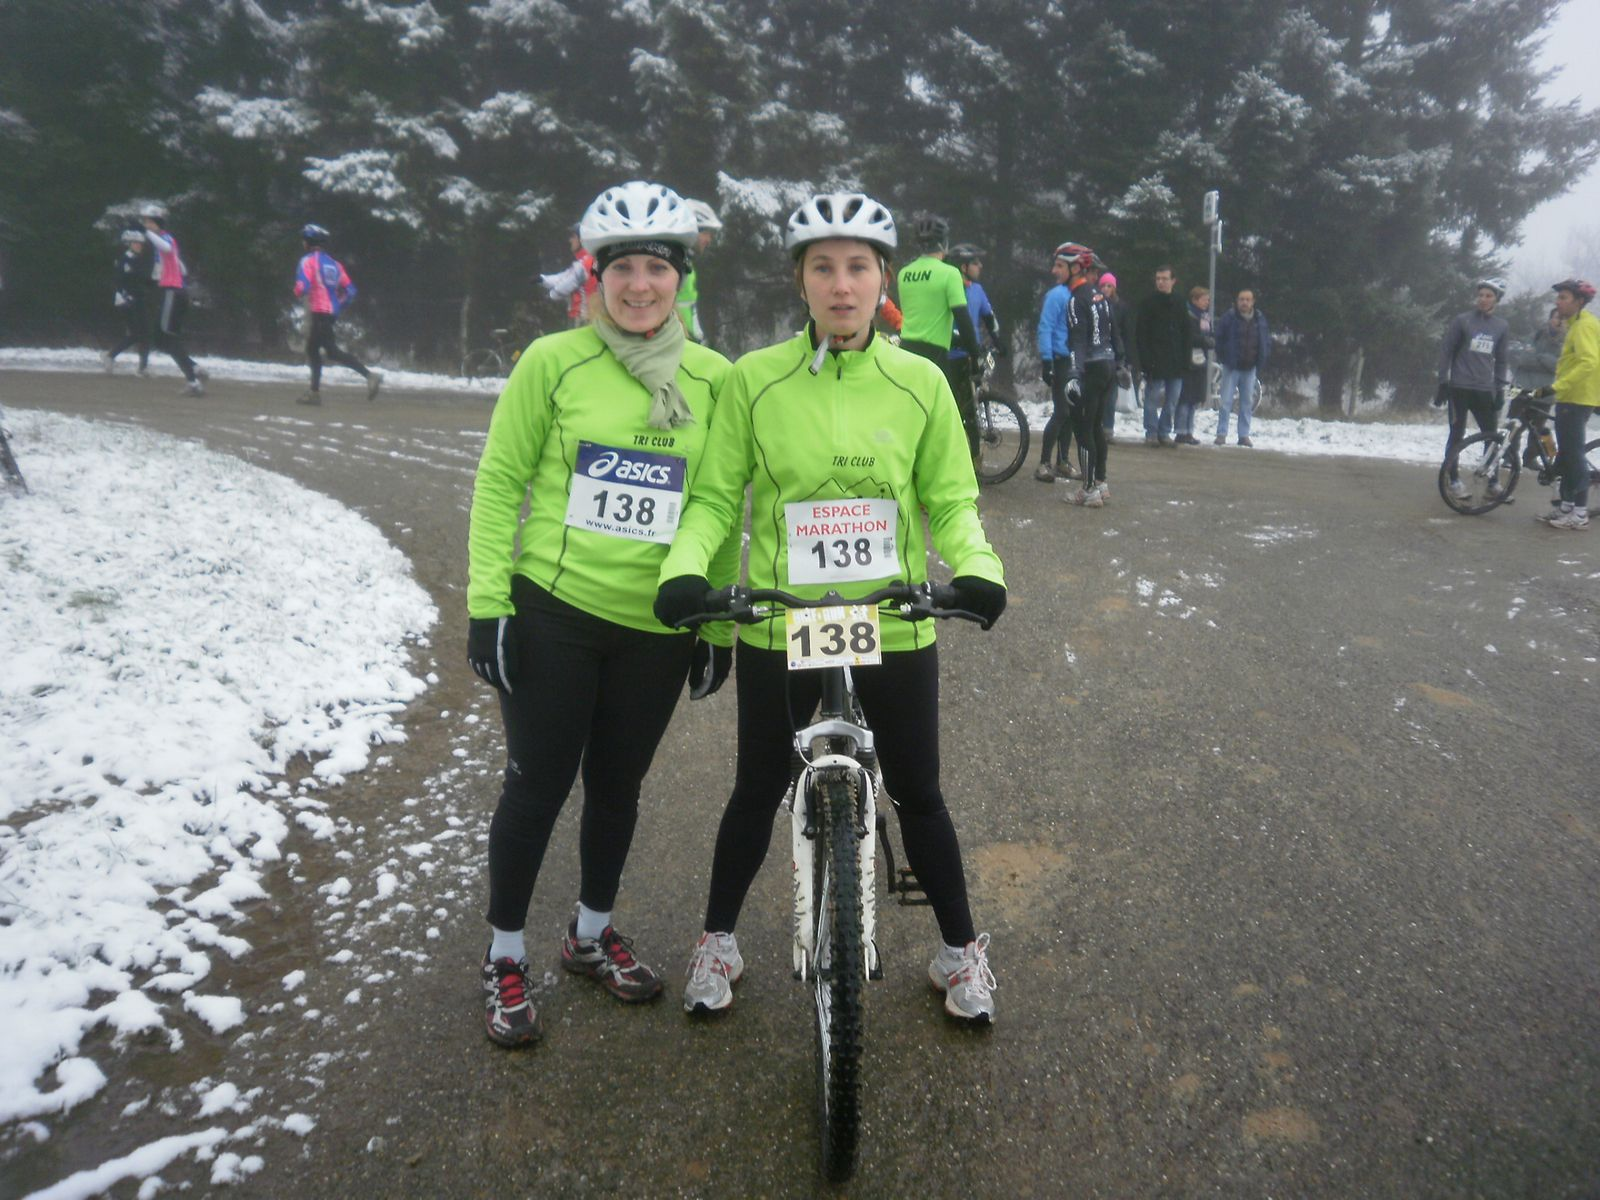 Album - Run-and-bike-Oberhausbergen-2010